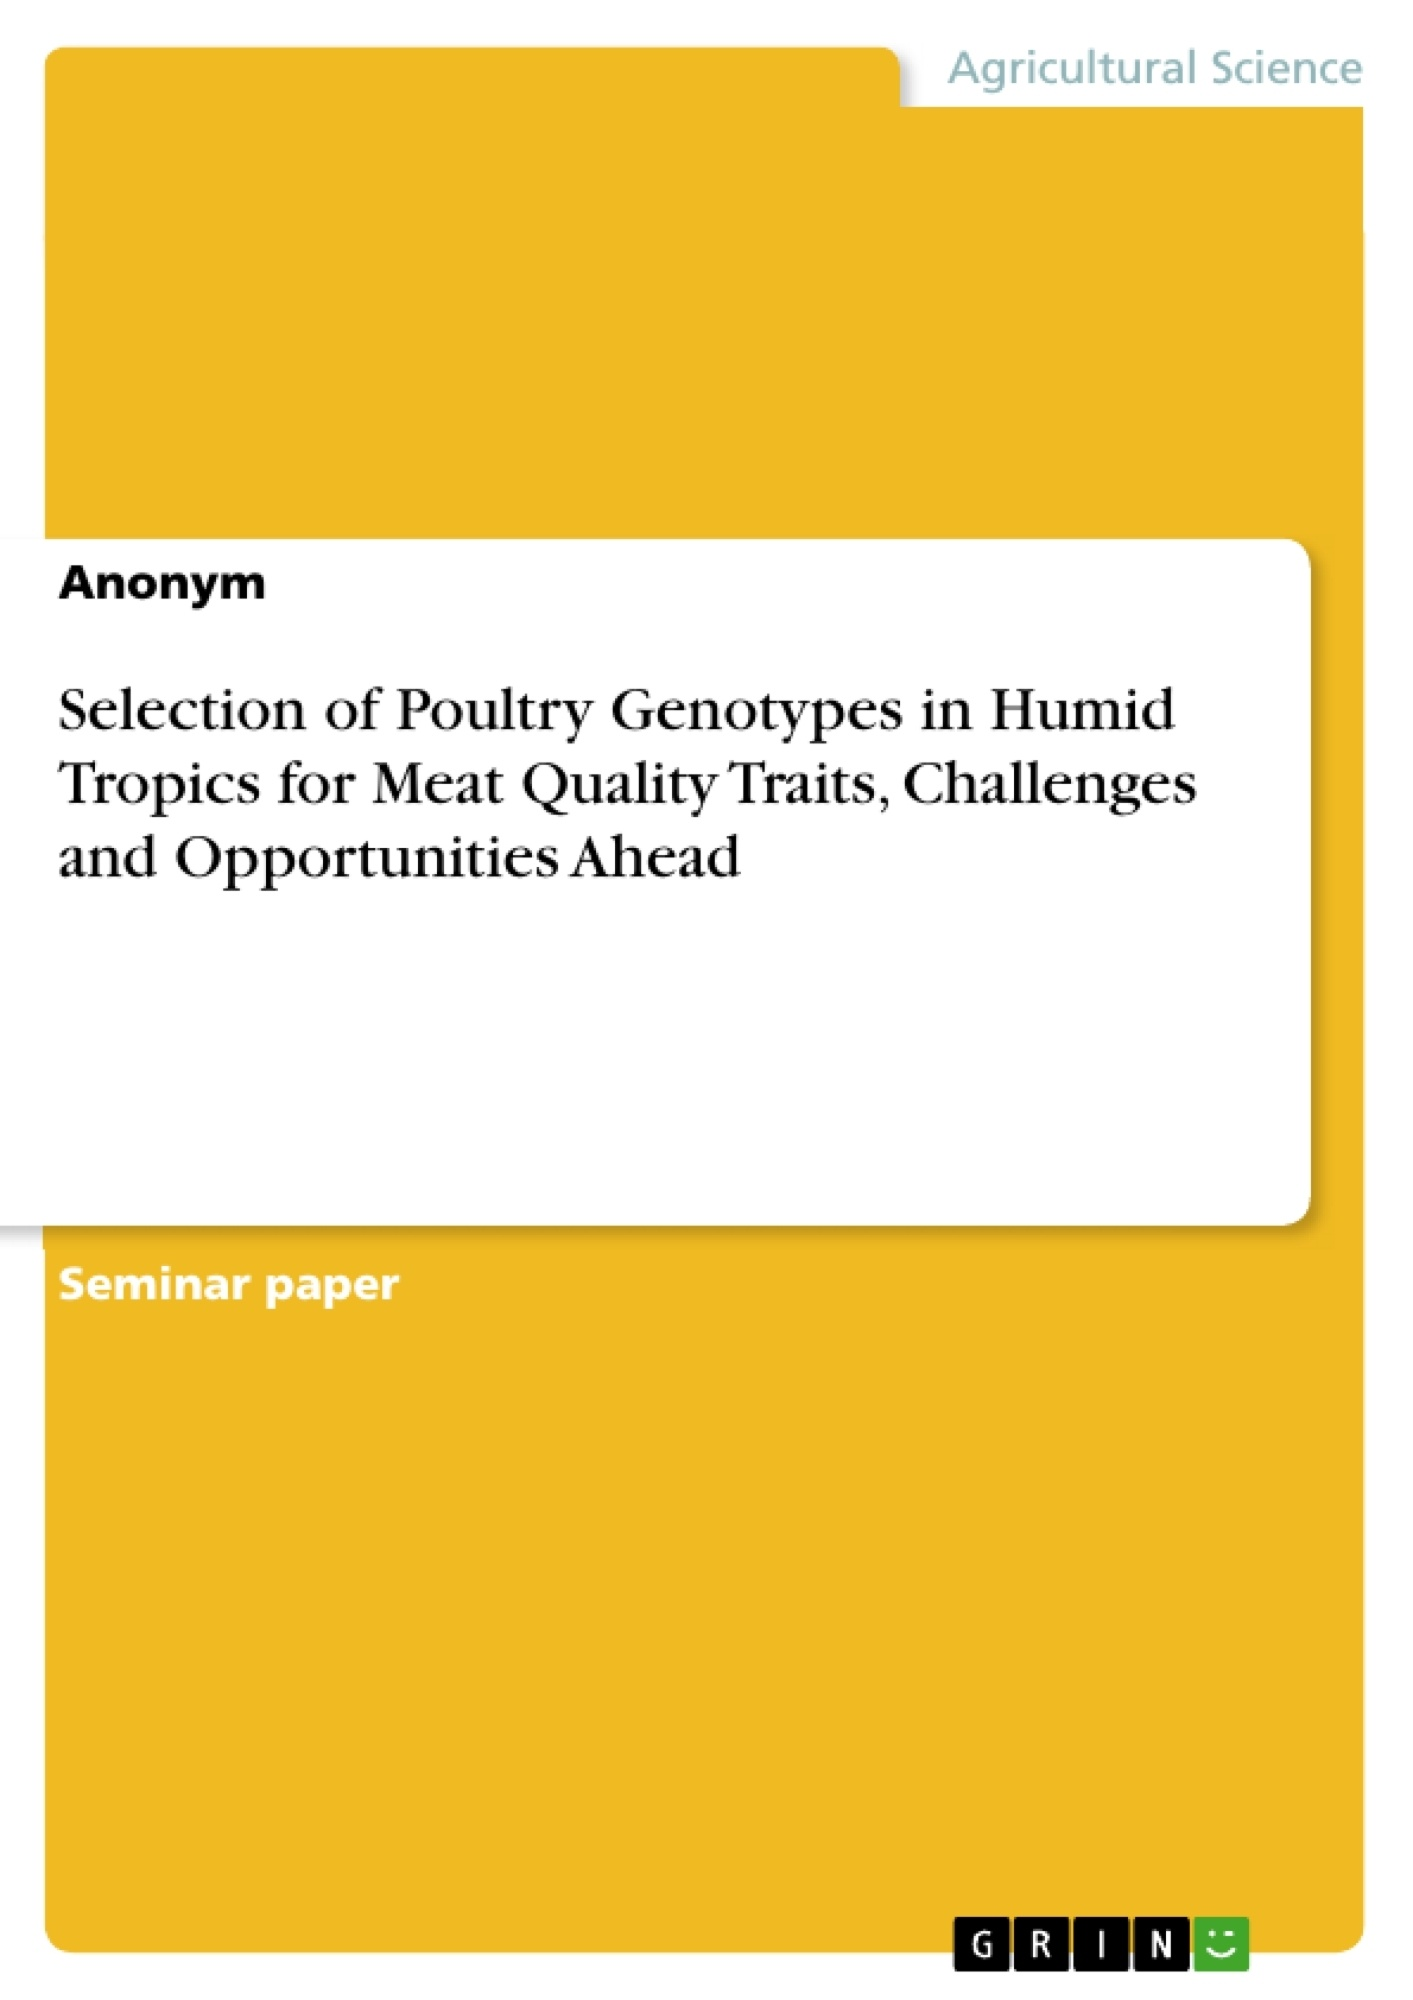 Title: Selection of Poultry Genotypes in Humid Tropics for Meat Quality Traits, Challenges and Opportunities Ahead